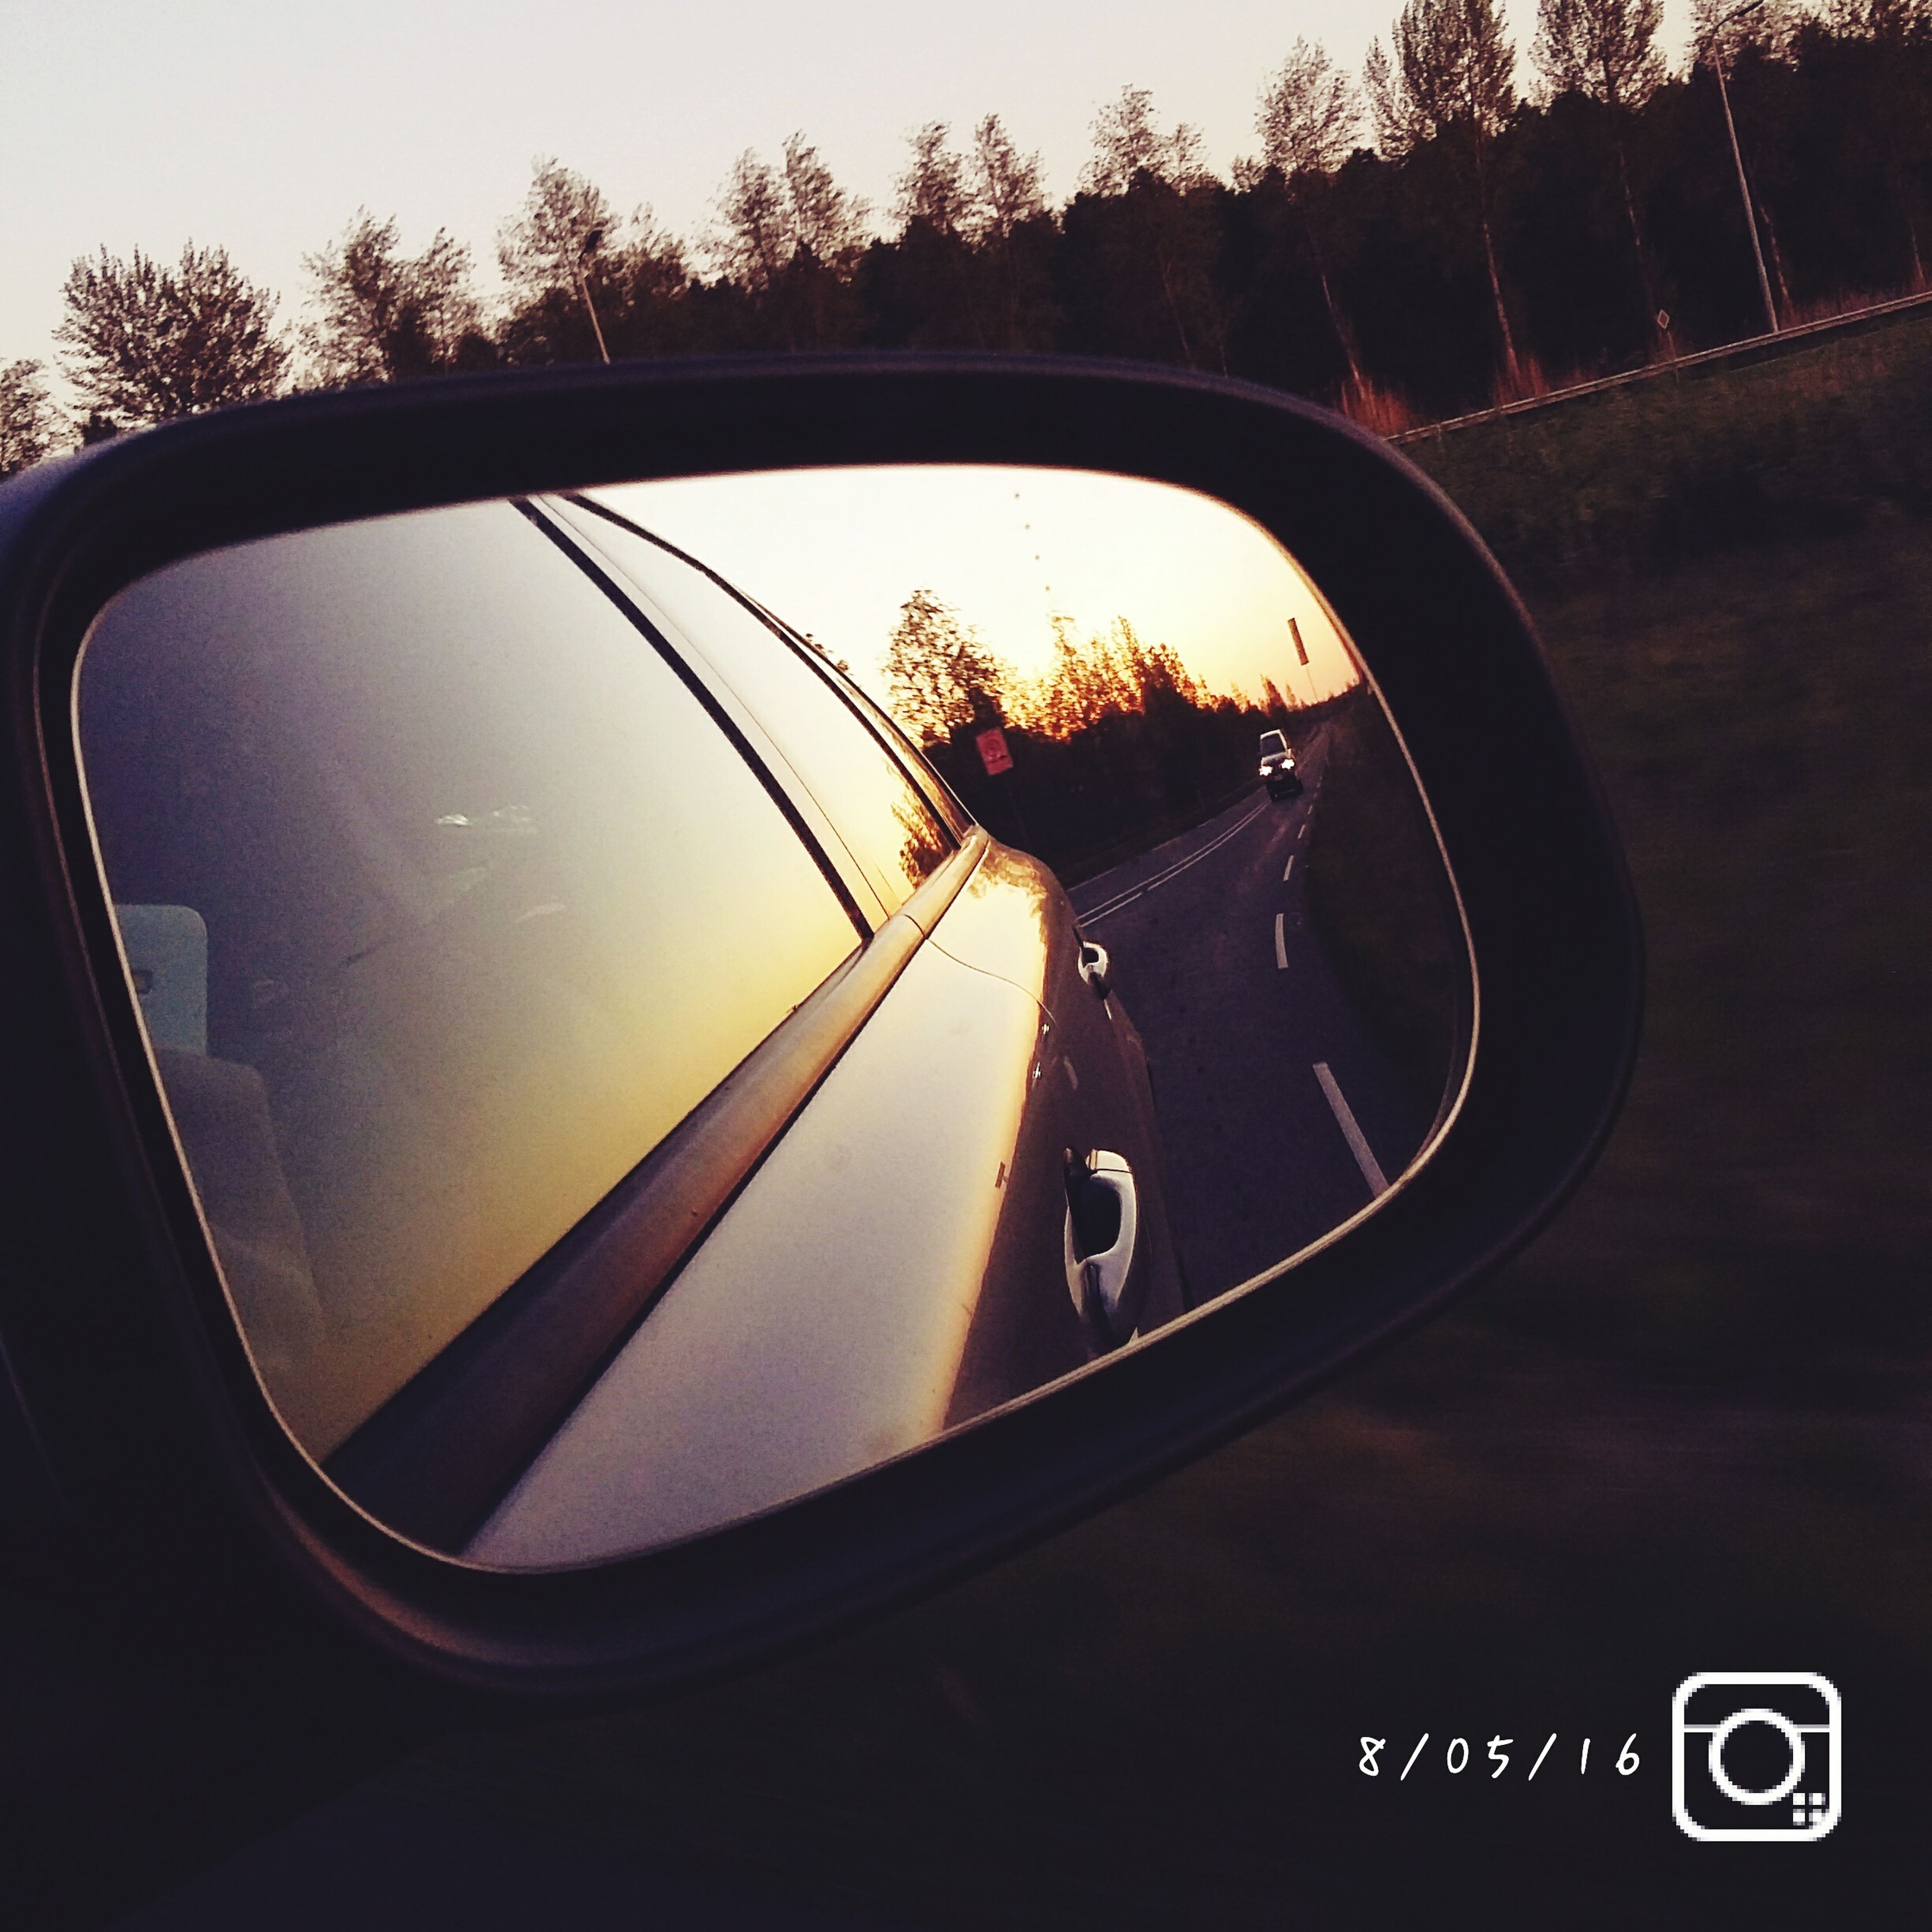 transportation, reflection, land vehicle, side-view mirror, car, sunset, mode of transport, street, road, close-up, part of, sky, orange color, vehicle, no people, cloud - sky